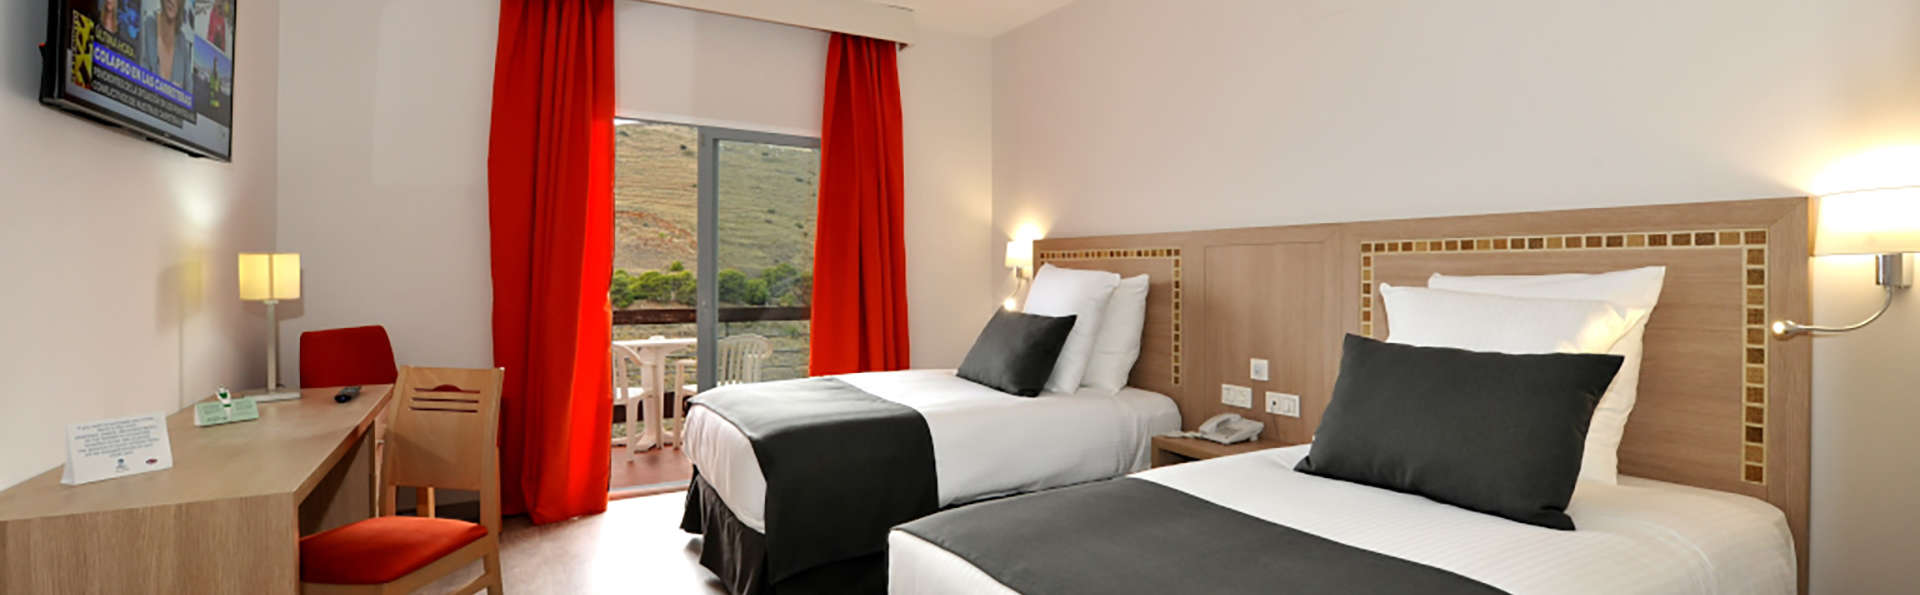 Hotel Salobreña suites - EDIT_N2_DOBLESUP_ROOM_01.jpg